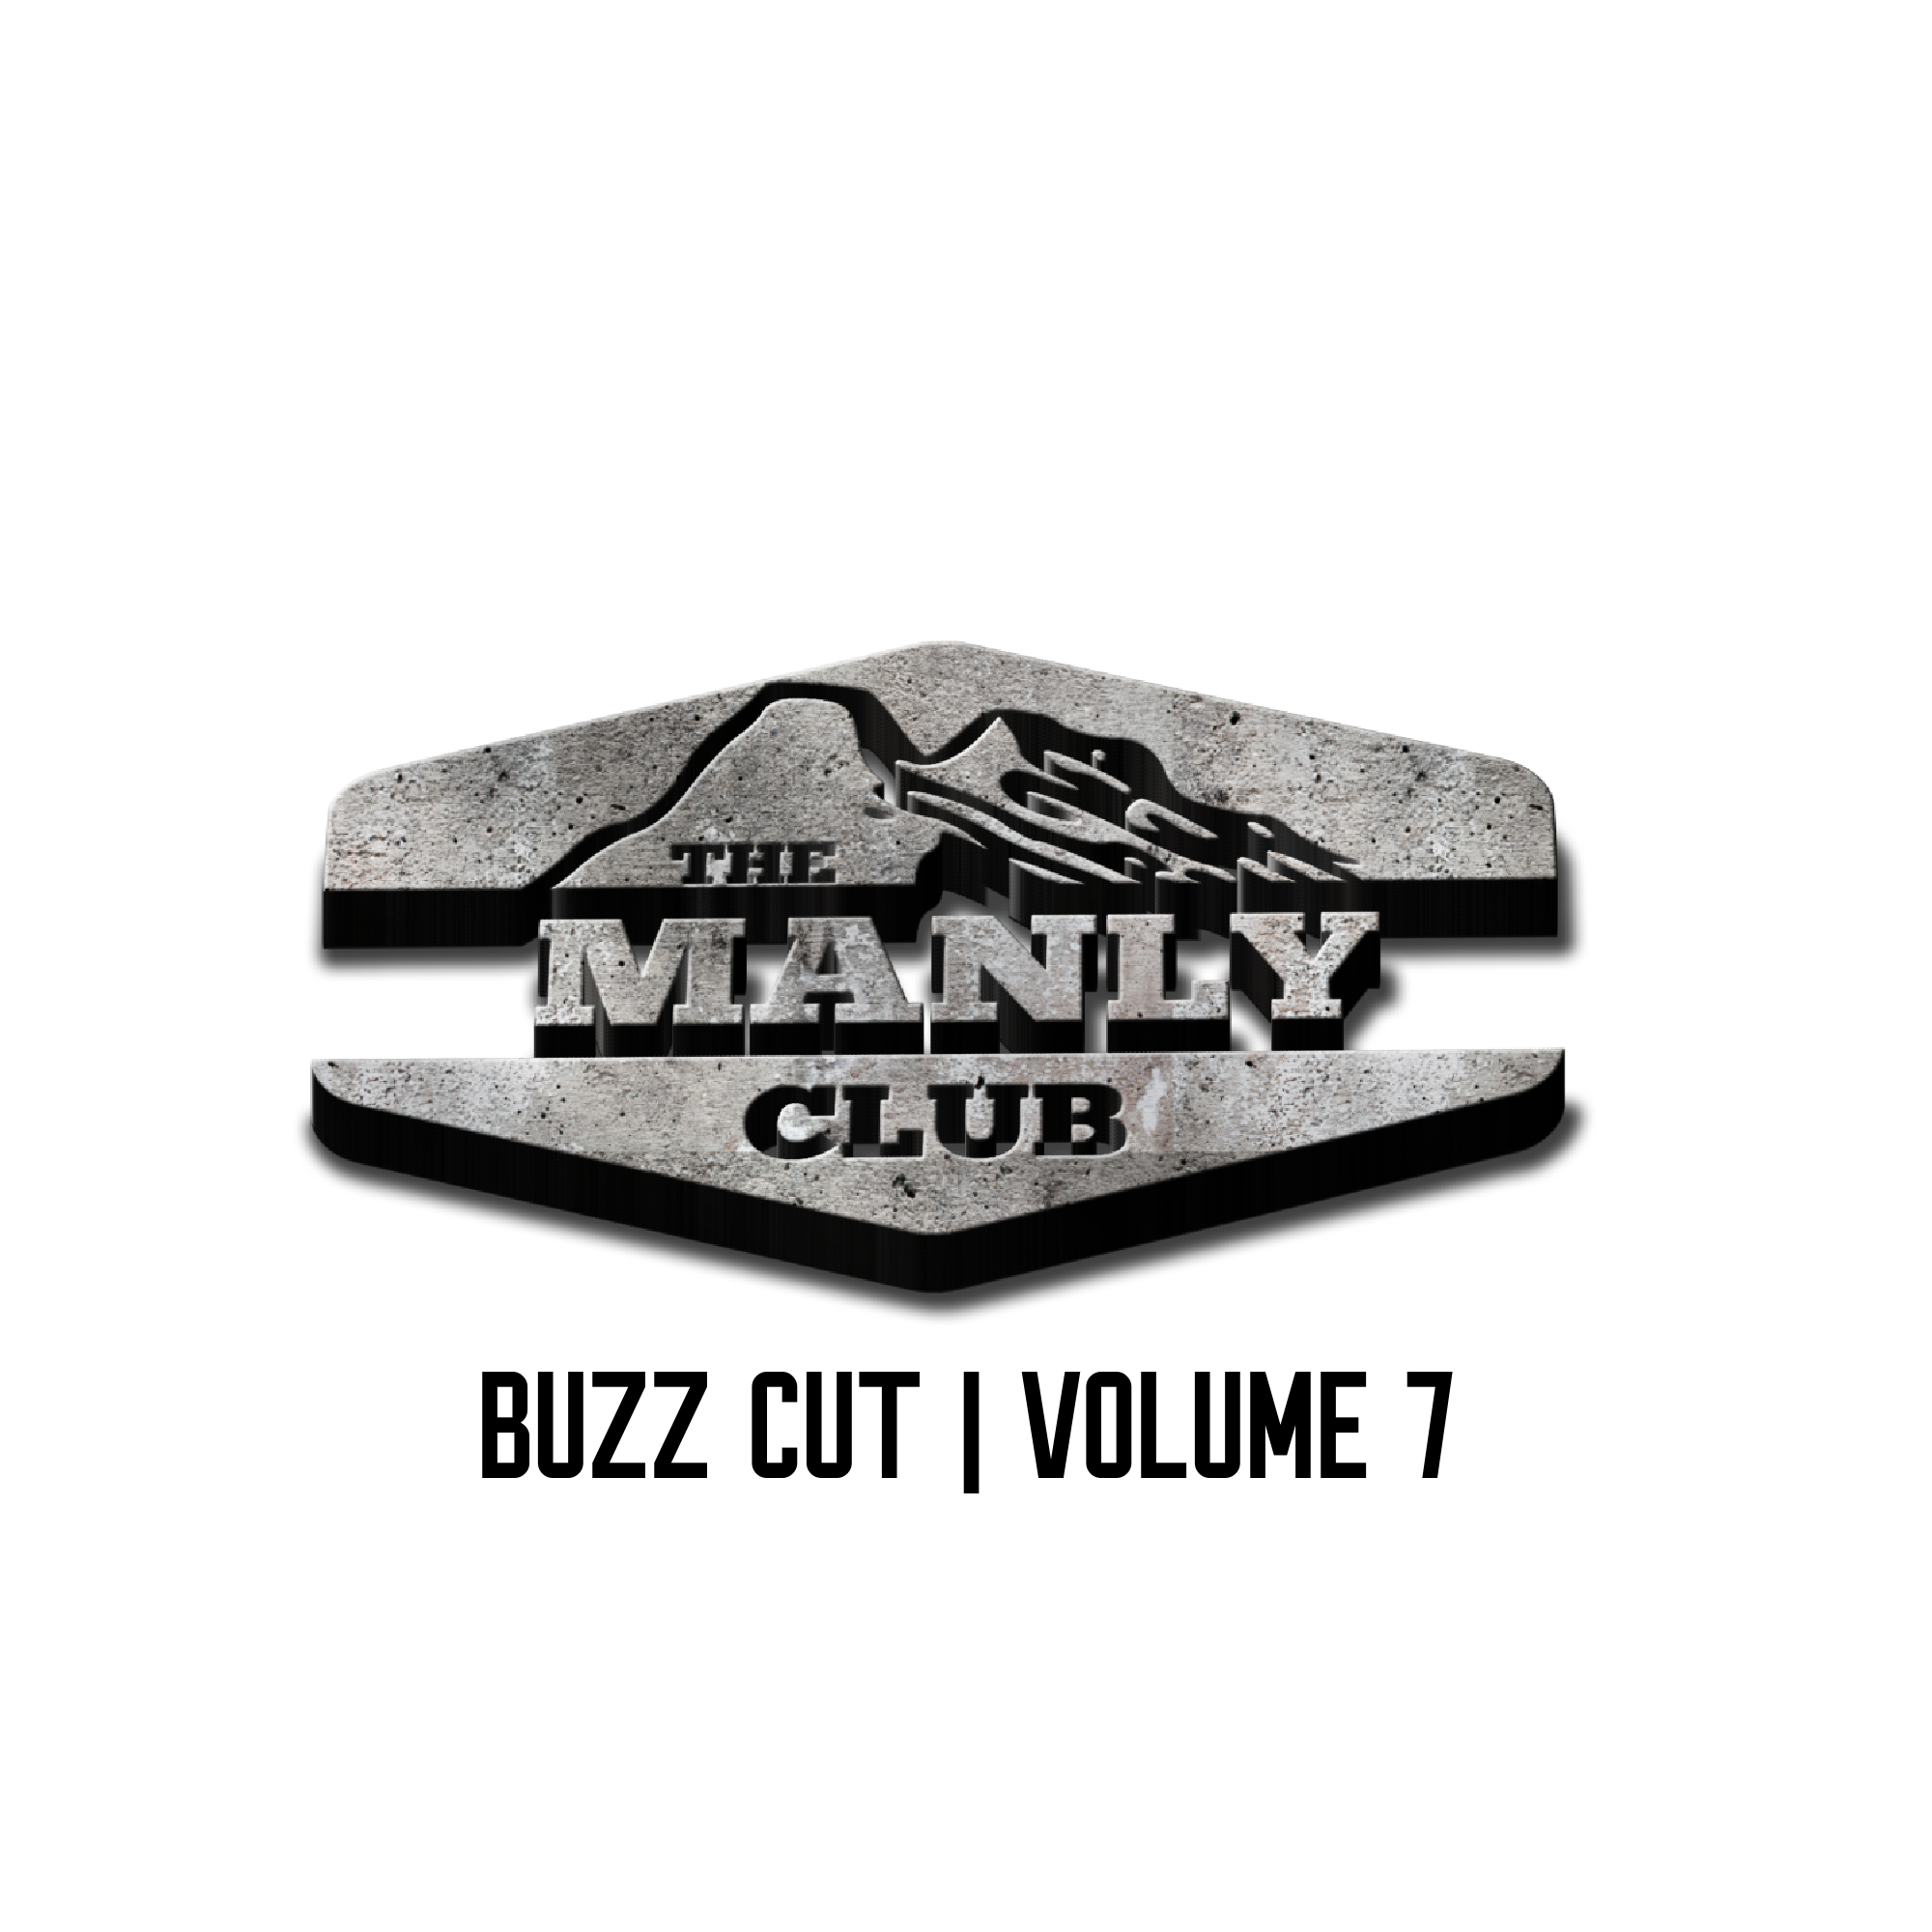 the manly club buzz cut volume 7